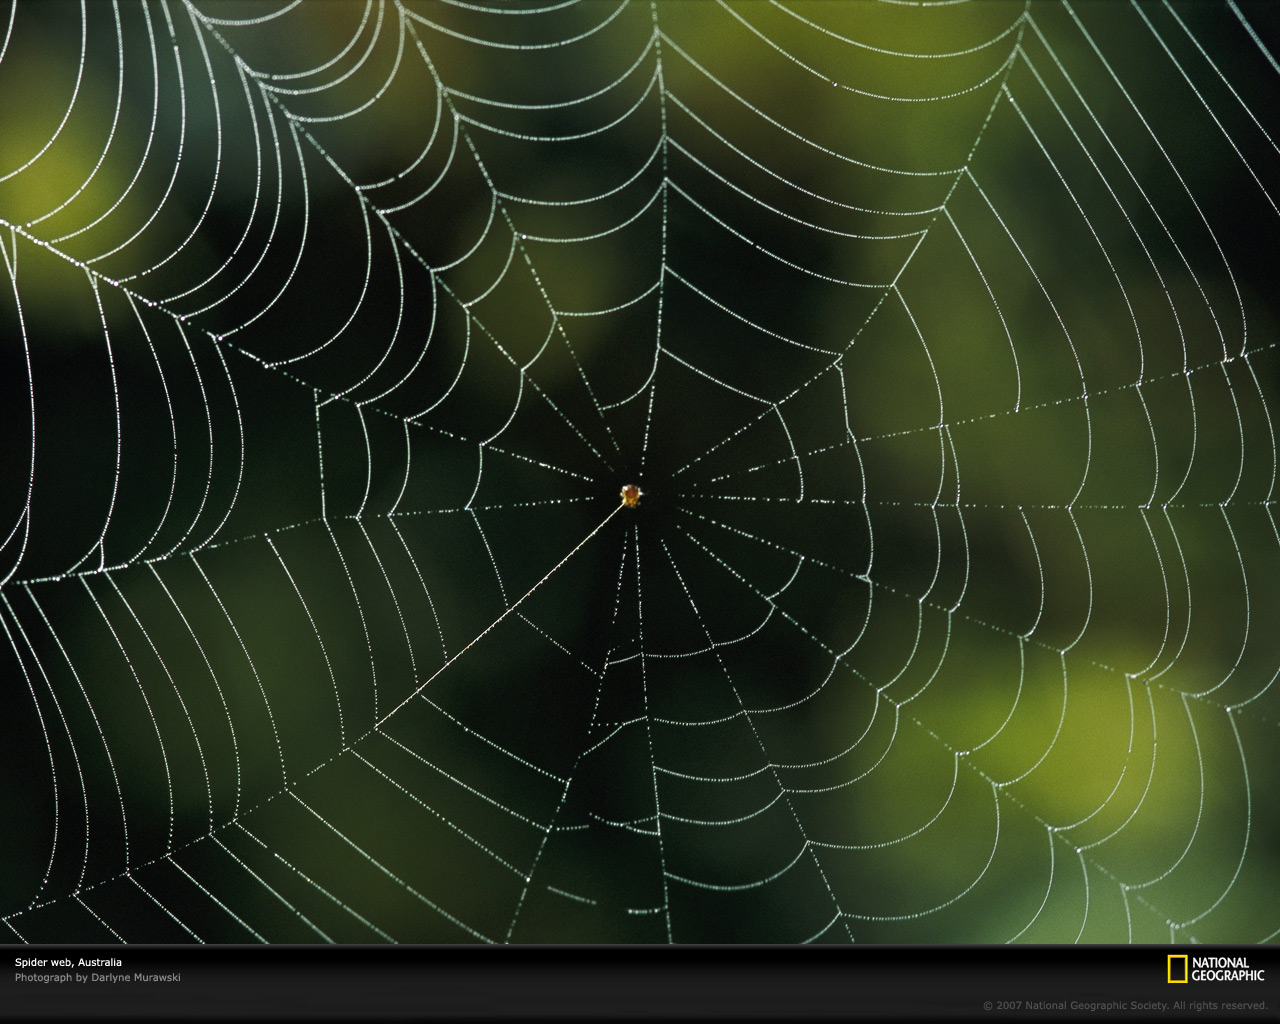 1280 x 1024 pixels—best for larger/widescreen monitors. A perfectly formed spider web ...